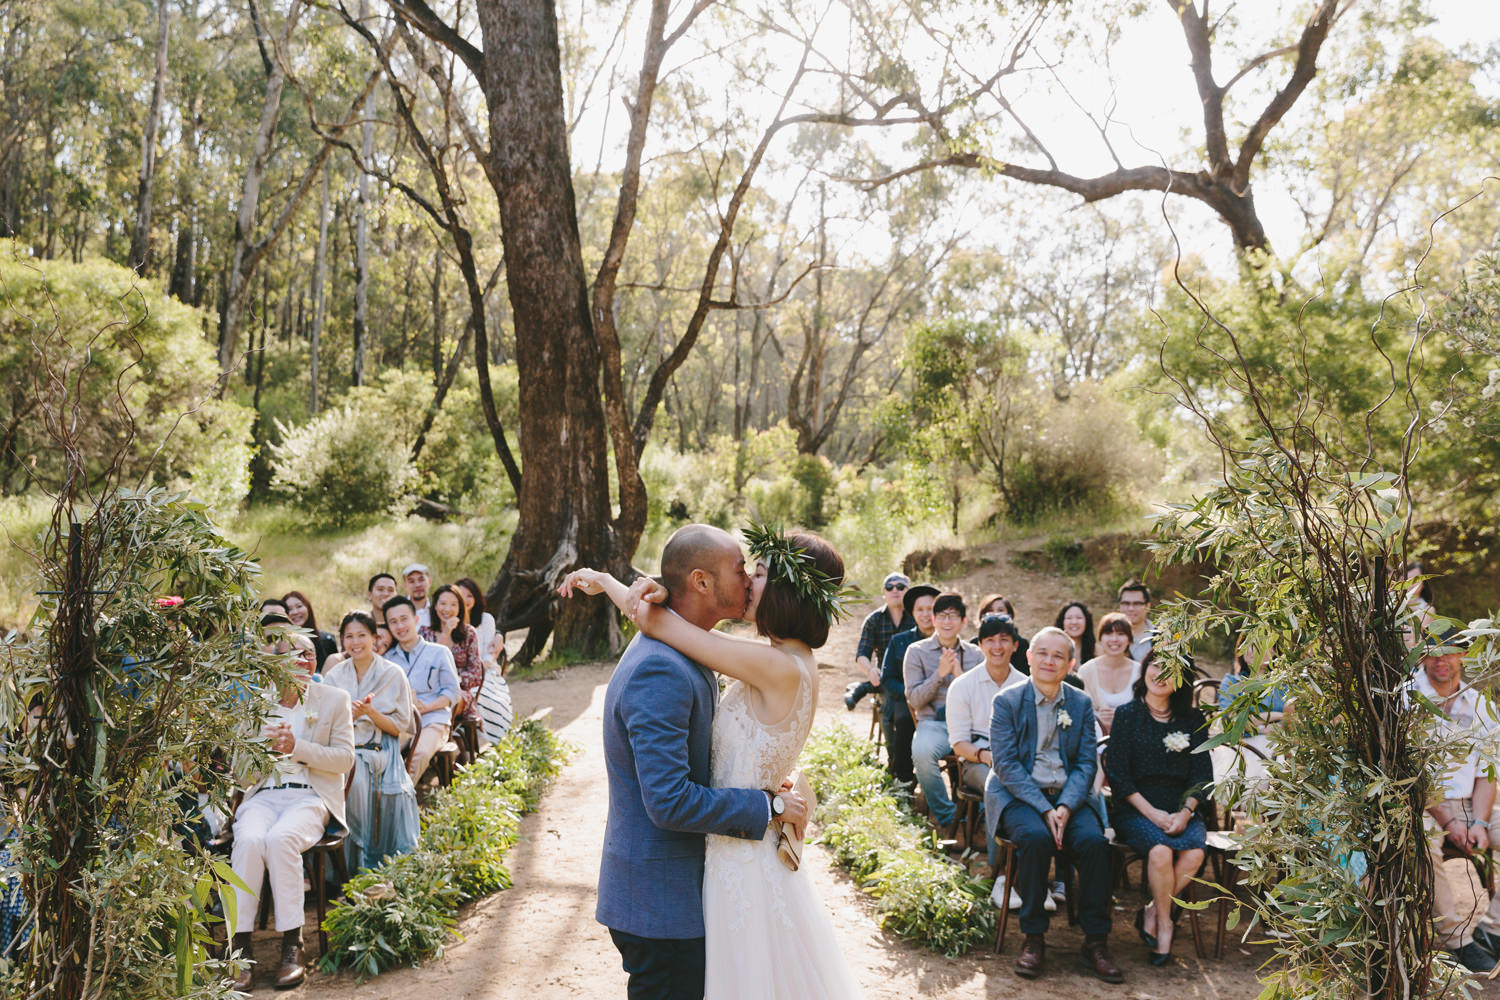 115-Barn_Wedding_Australia_Sam_Ting.jpg